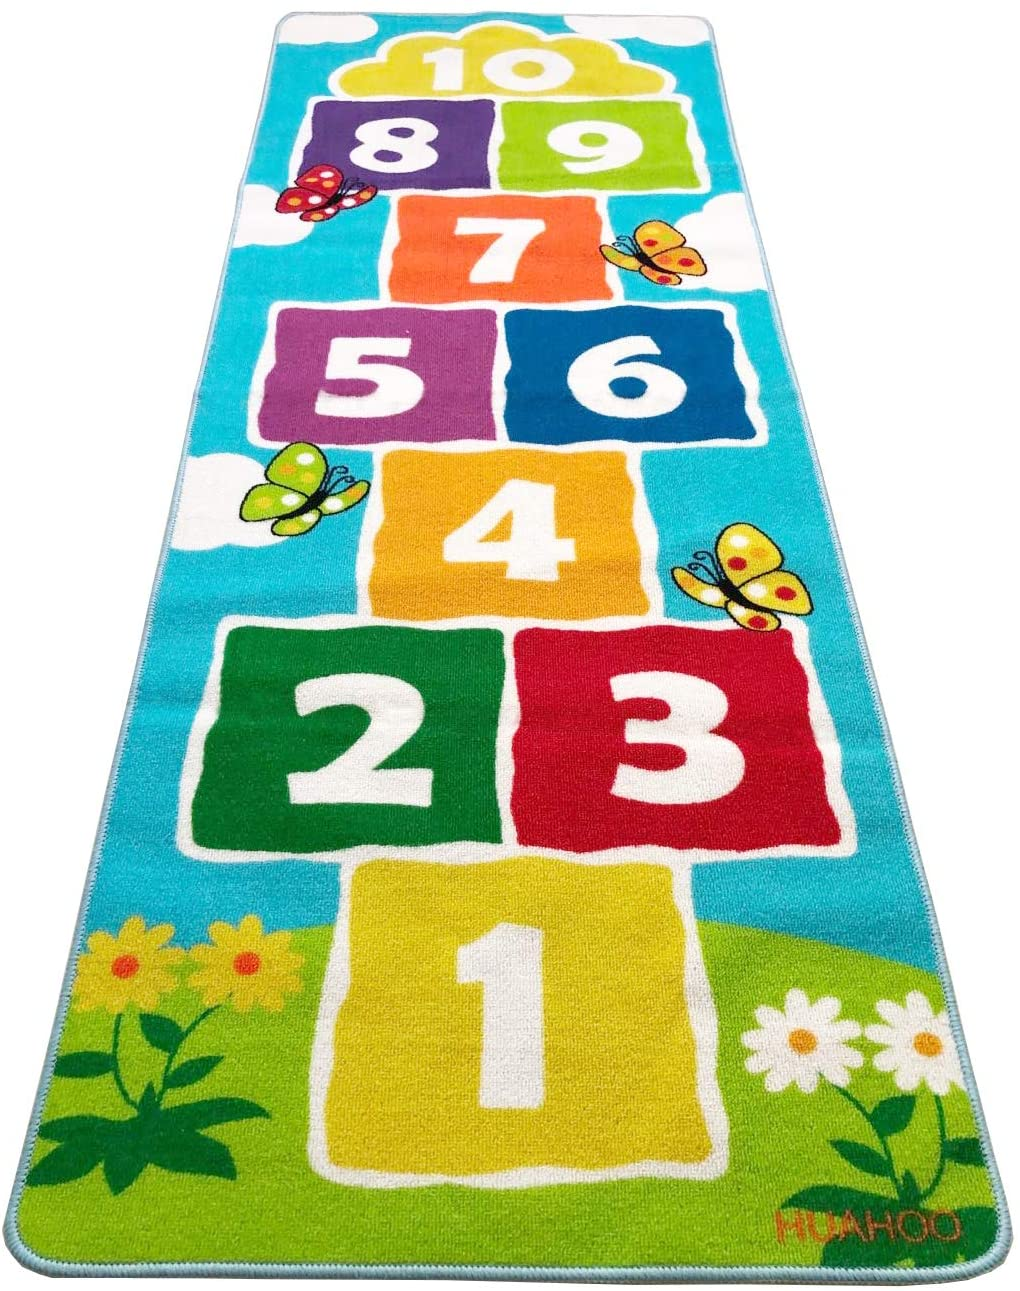 Hopscotch Rug Play Space & Room Decor, Sturdy Woven Floor Rug Children's Classroom Activity Rug (70.8 x 26.5 inch)